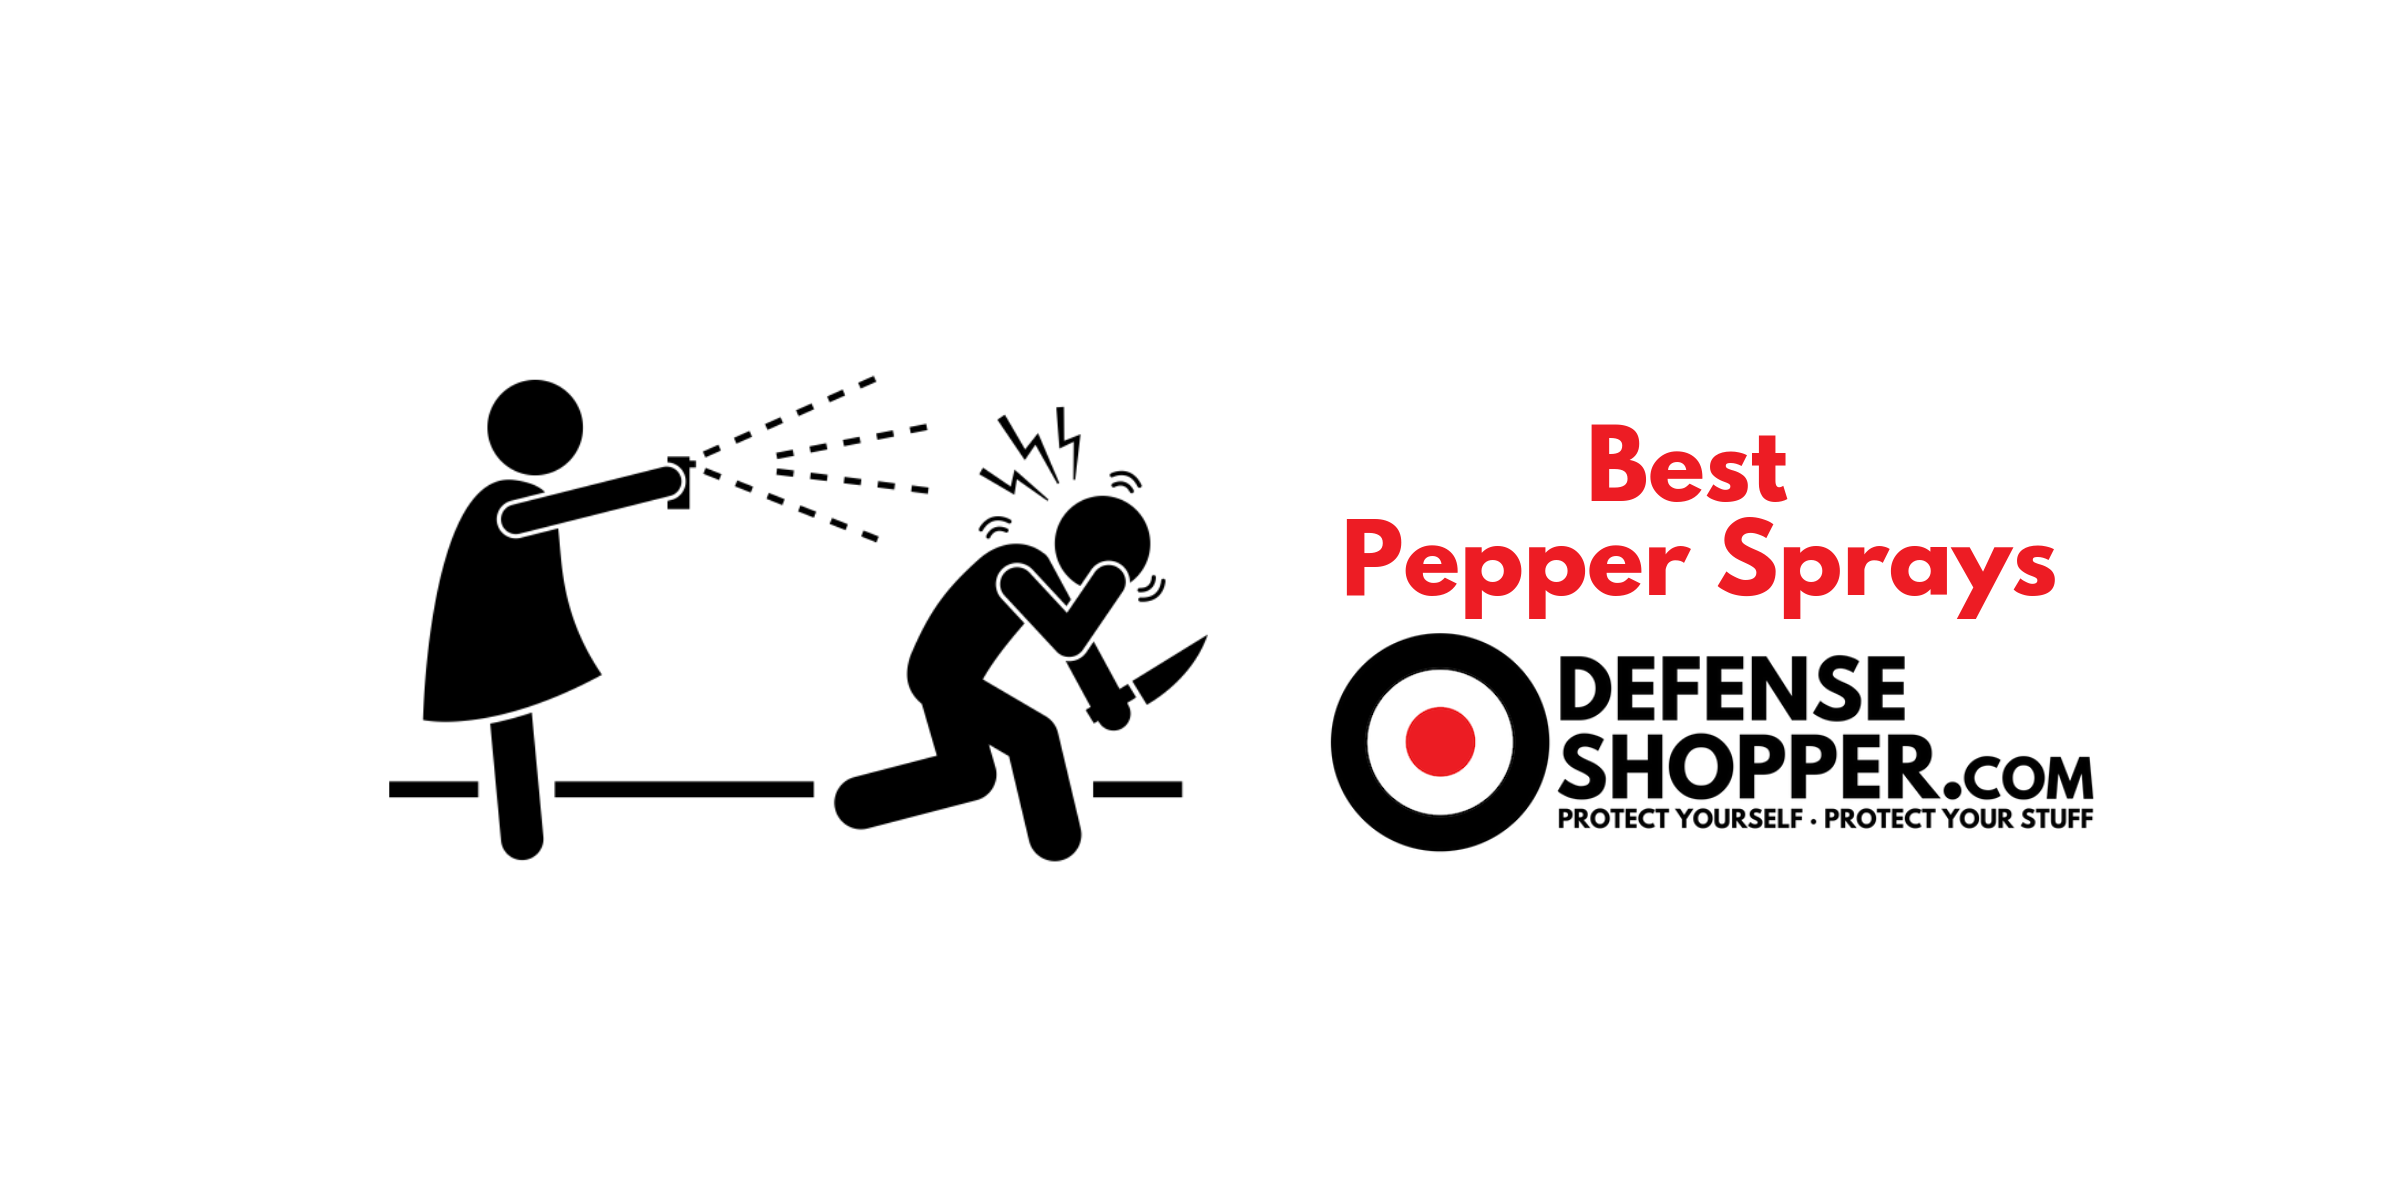 Best Pepper Spray for self defense